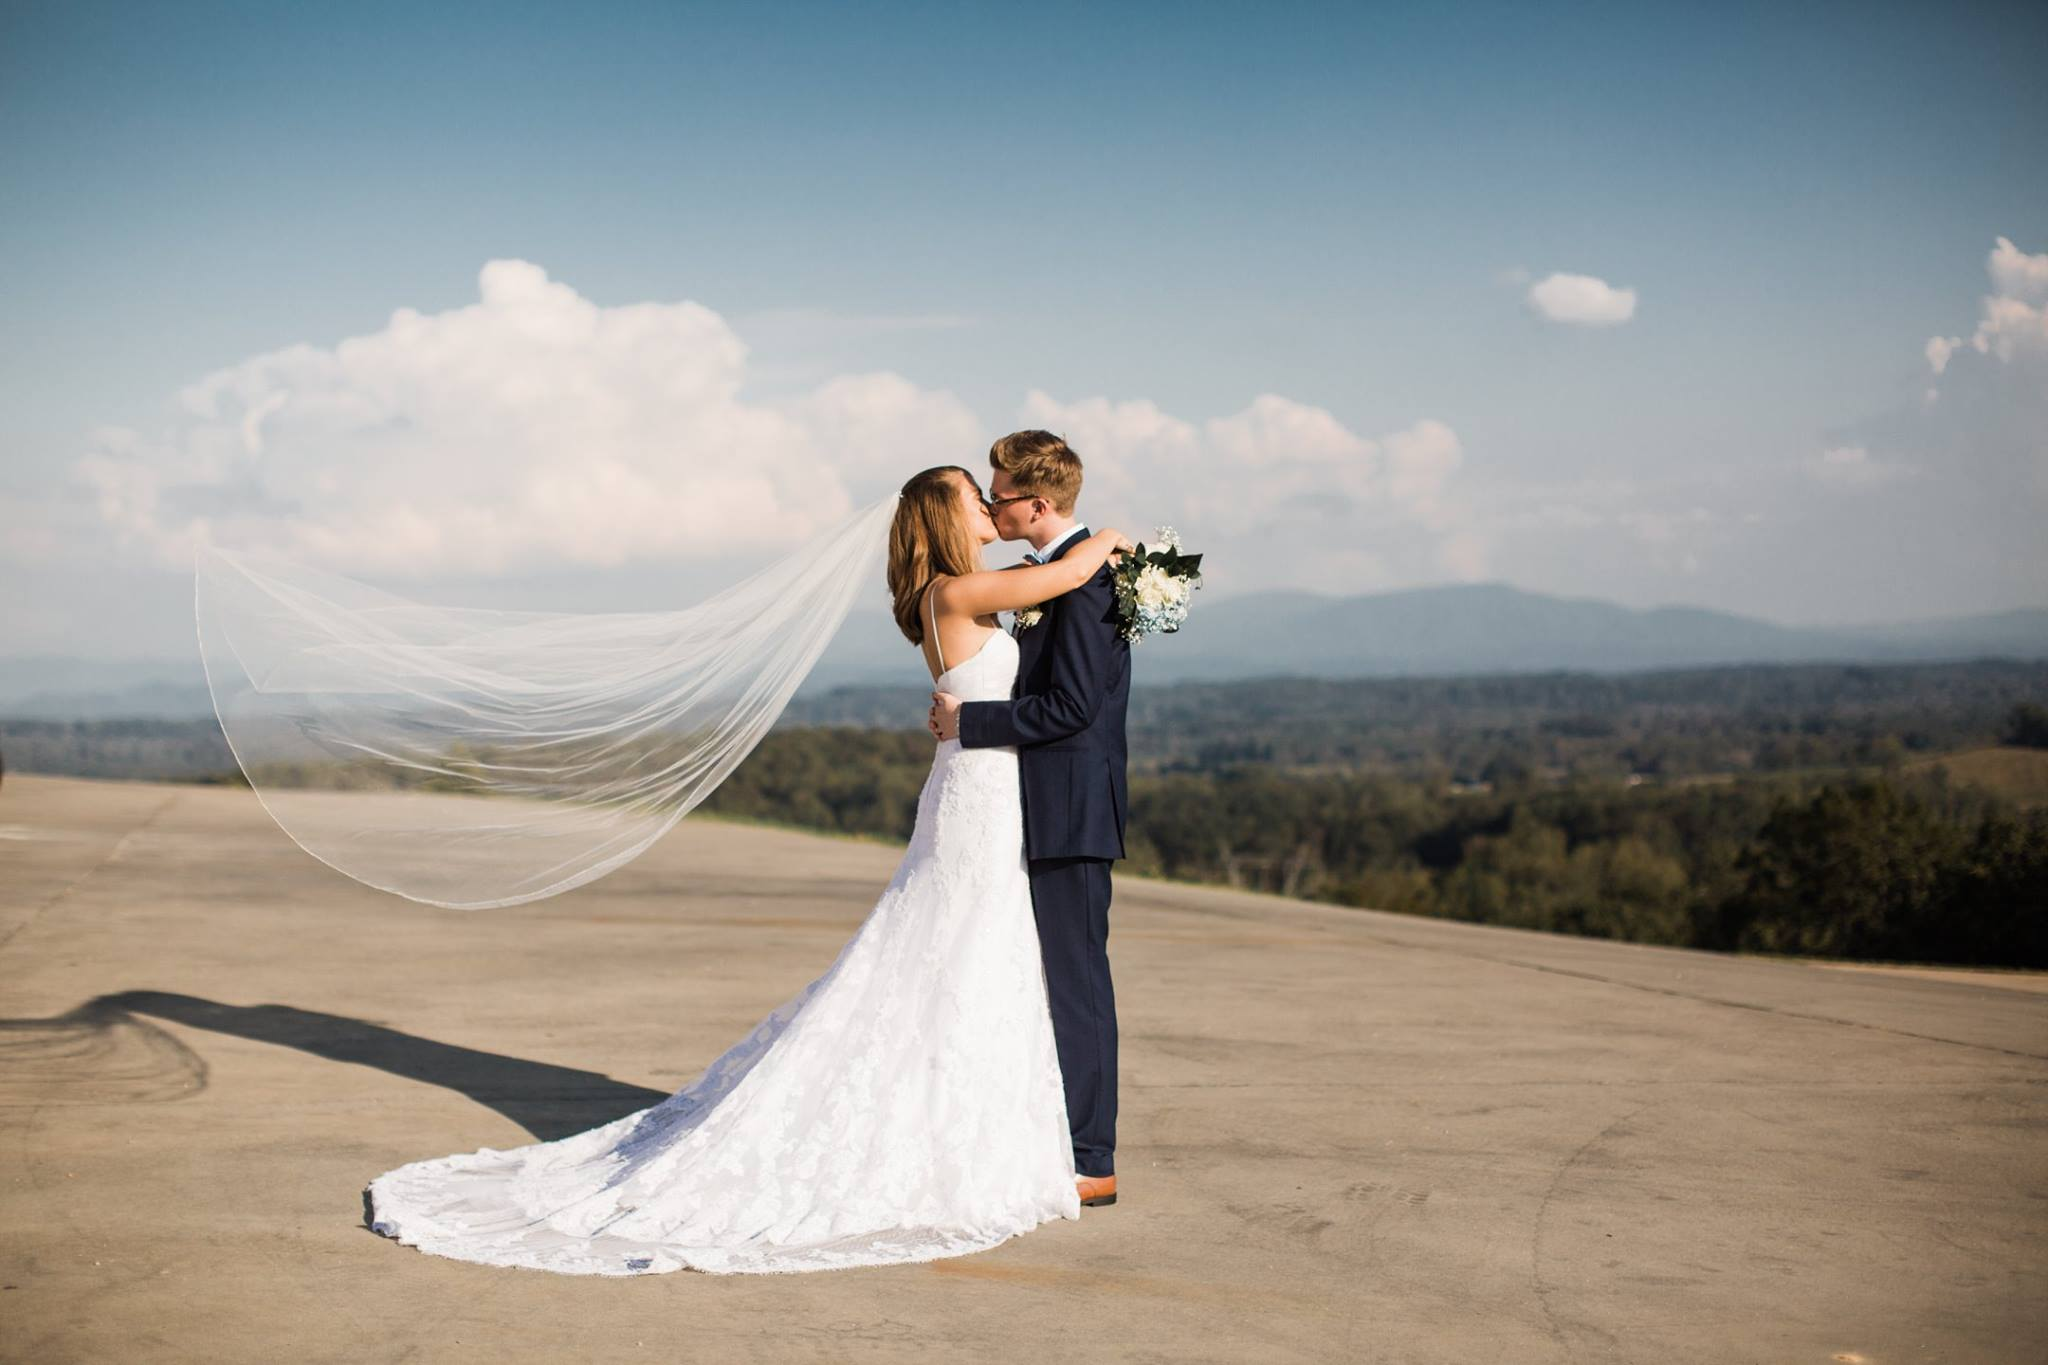 Chandler & Clint Page - October 6, 2018Abundant Photography